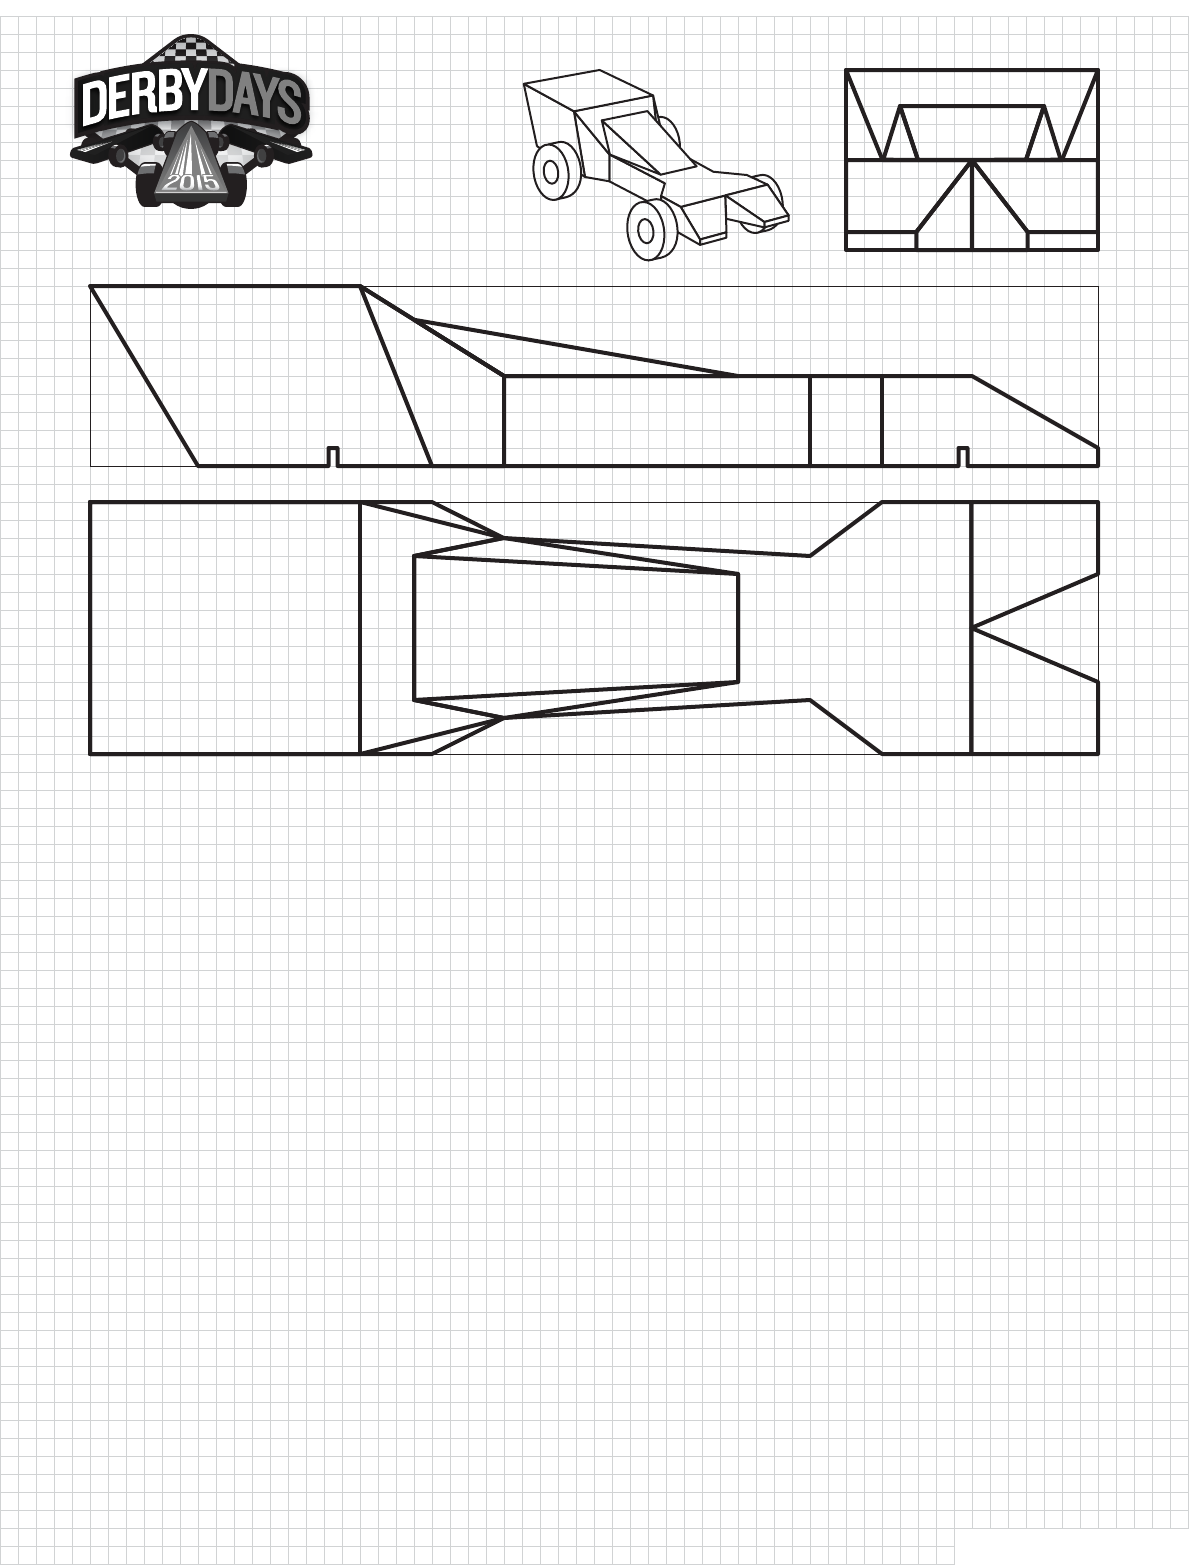 Comet Derby Car Template Design Download